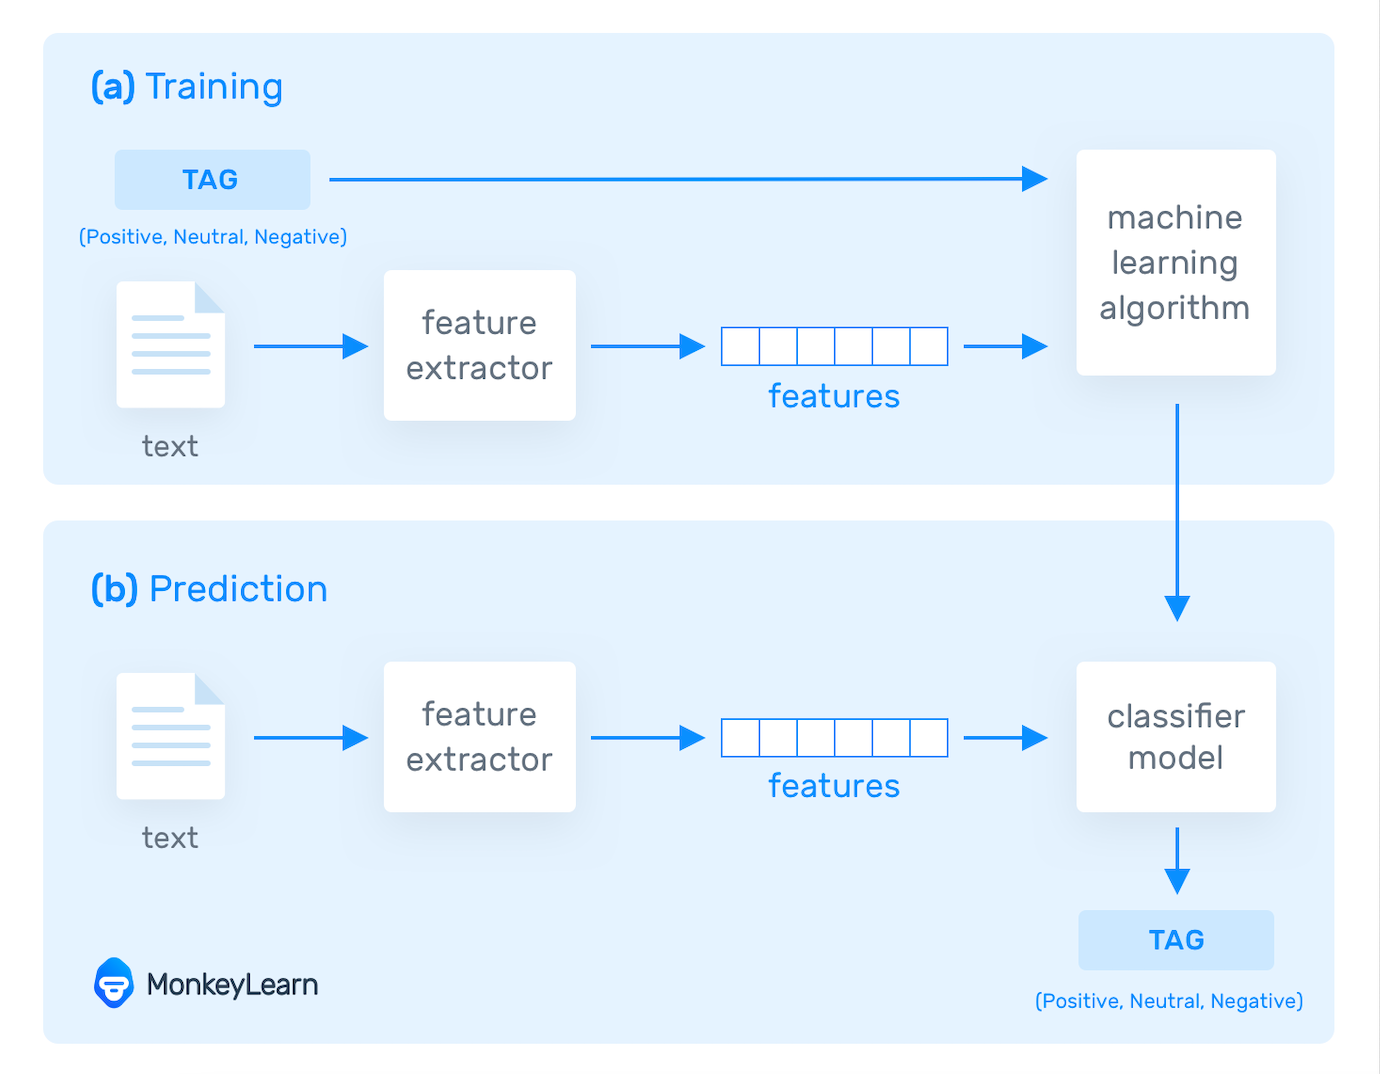 A diagram showing how machine learning models are trained with text features.